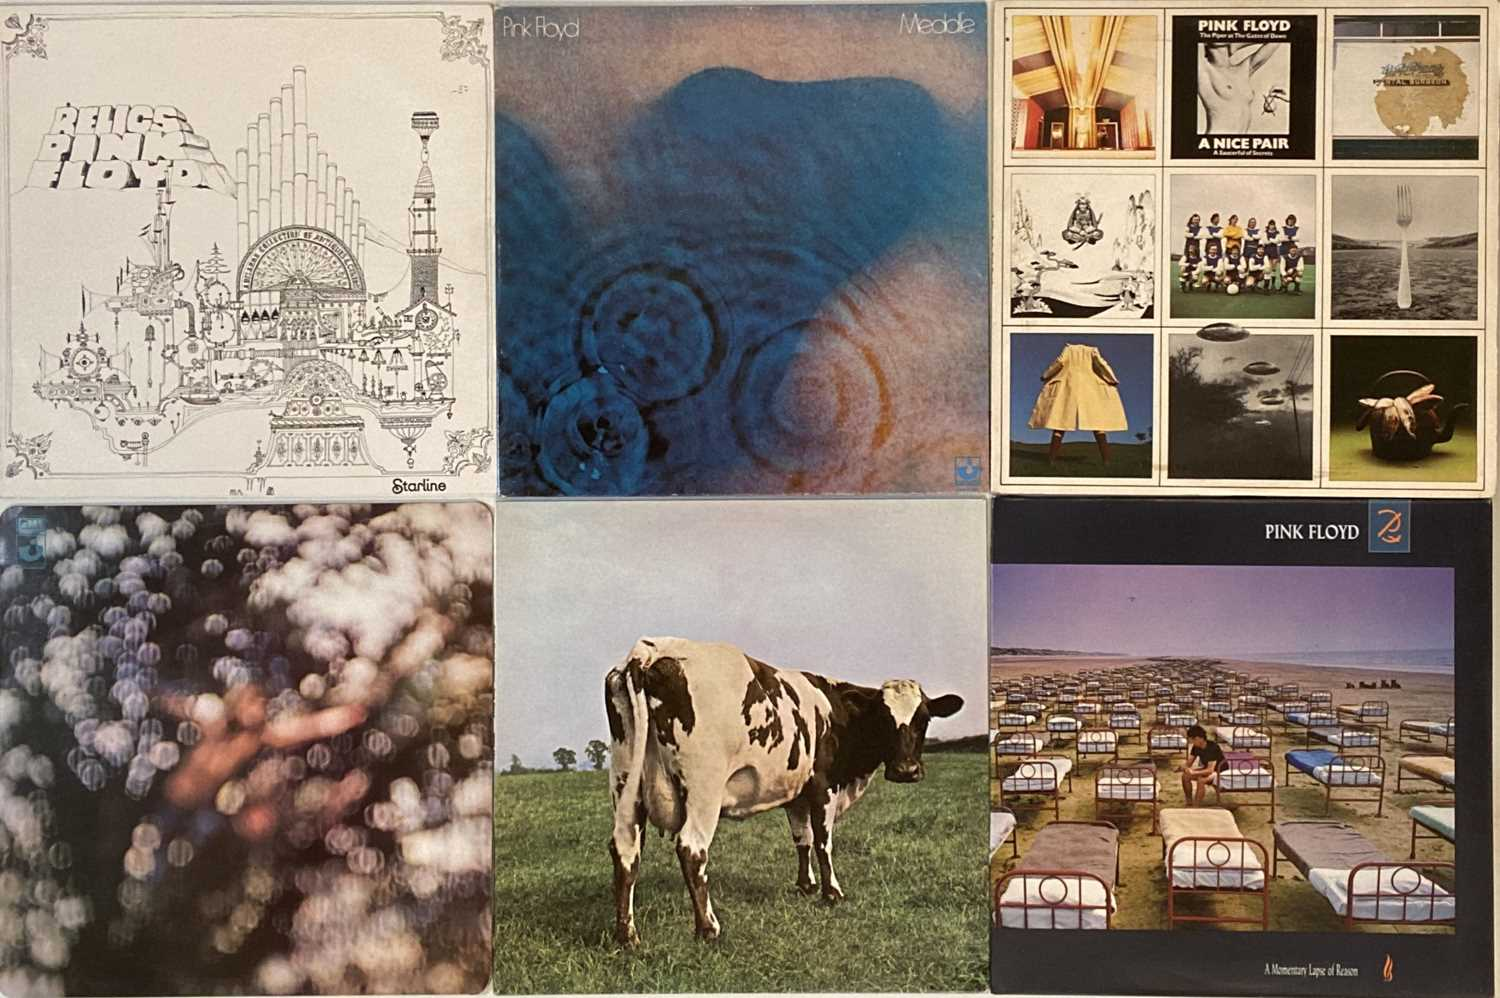 PINK FLOYD - LP COLLECTION - Image 2 of 2